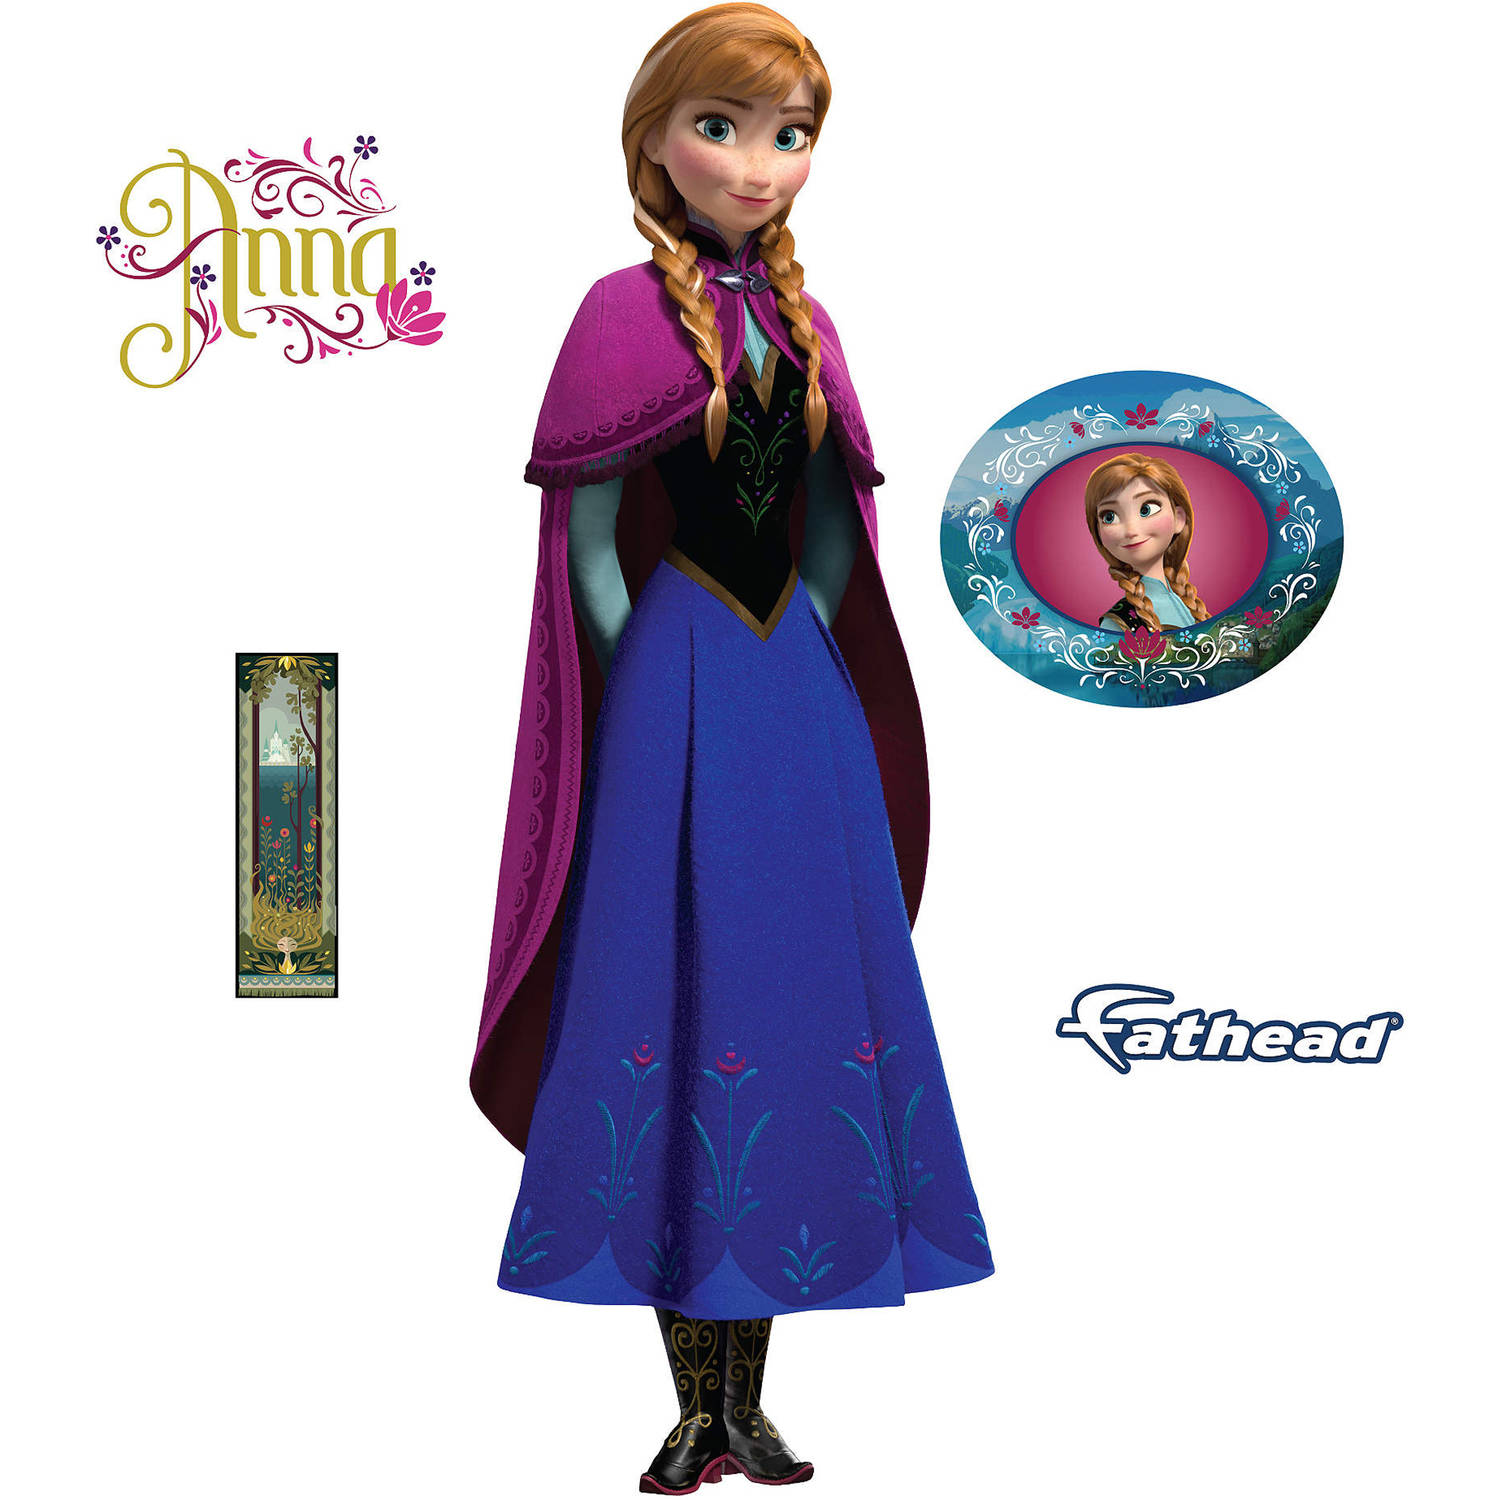 Fathead Disney Frozen Anna Teammate Player